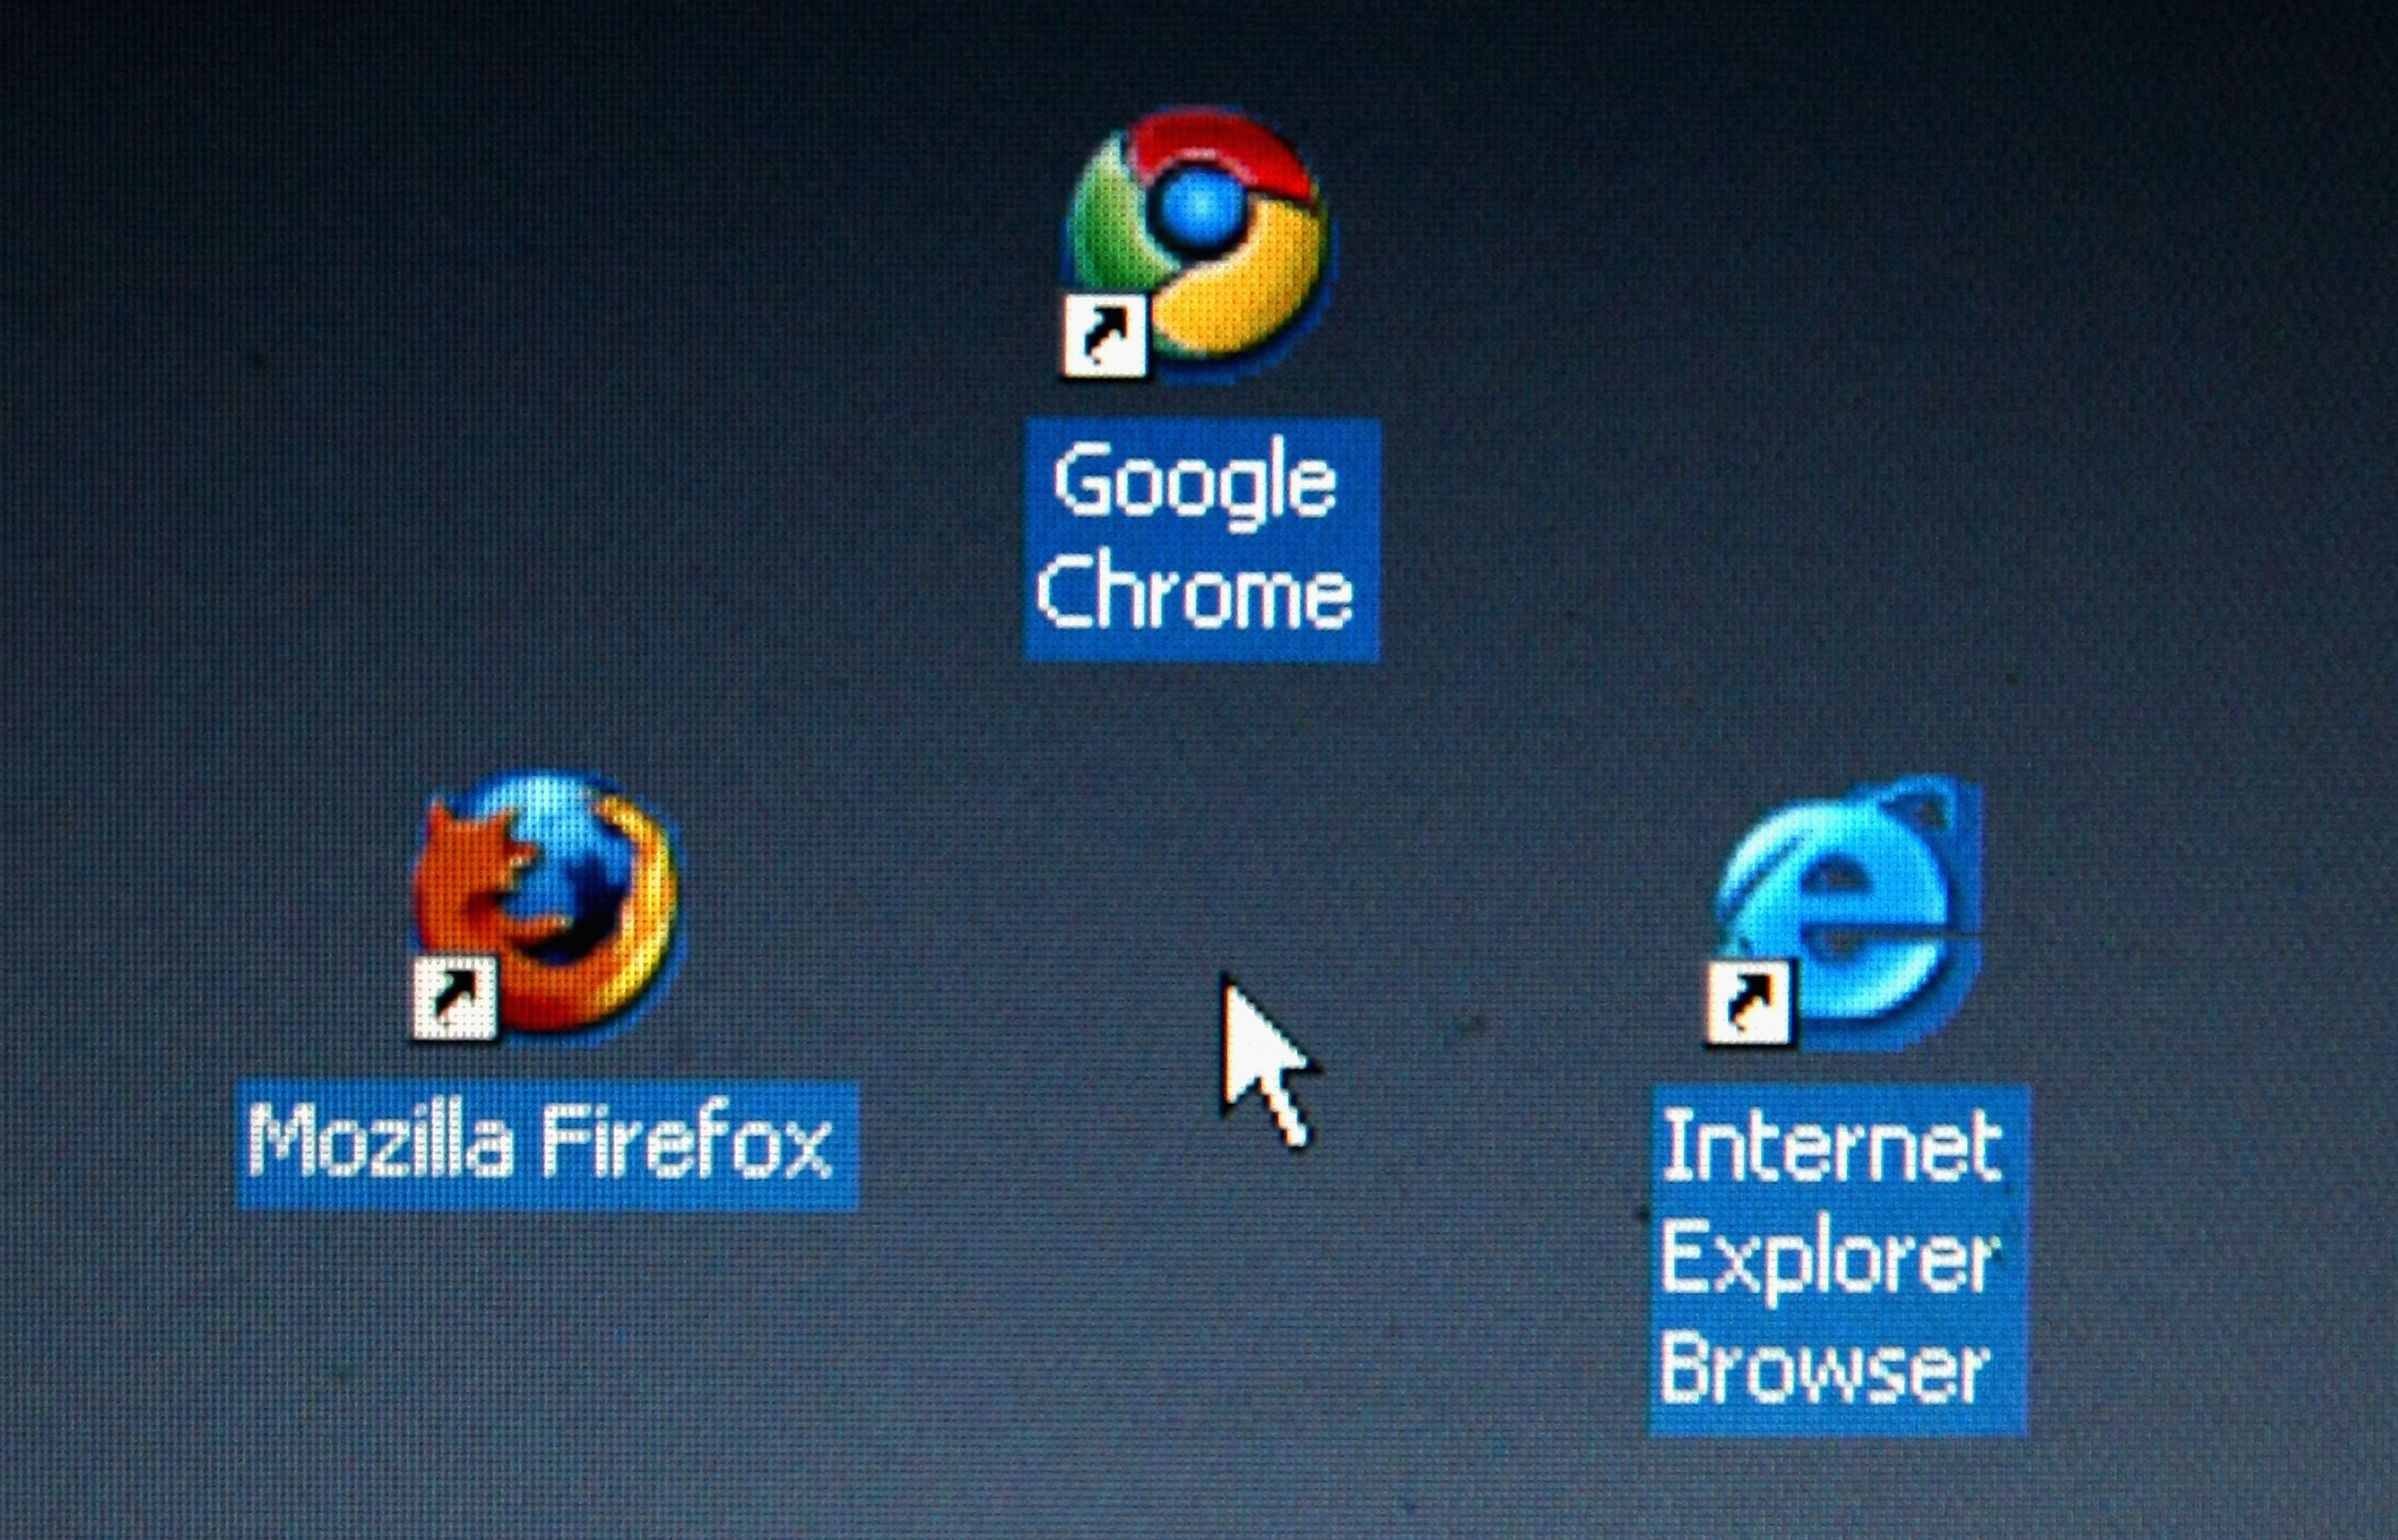 Firefox Facebook Extension Keeps Your Data Safe - HelloGiggles